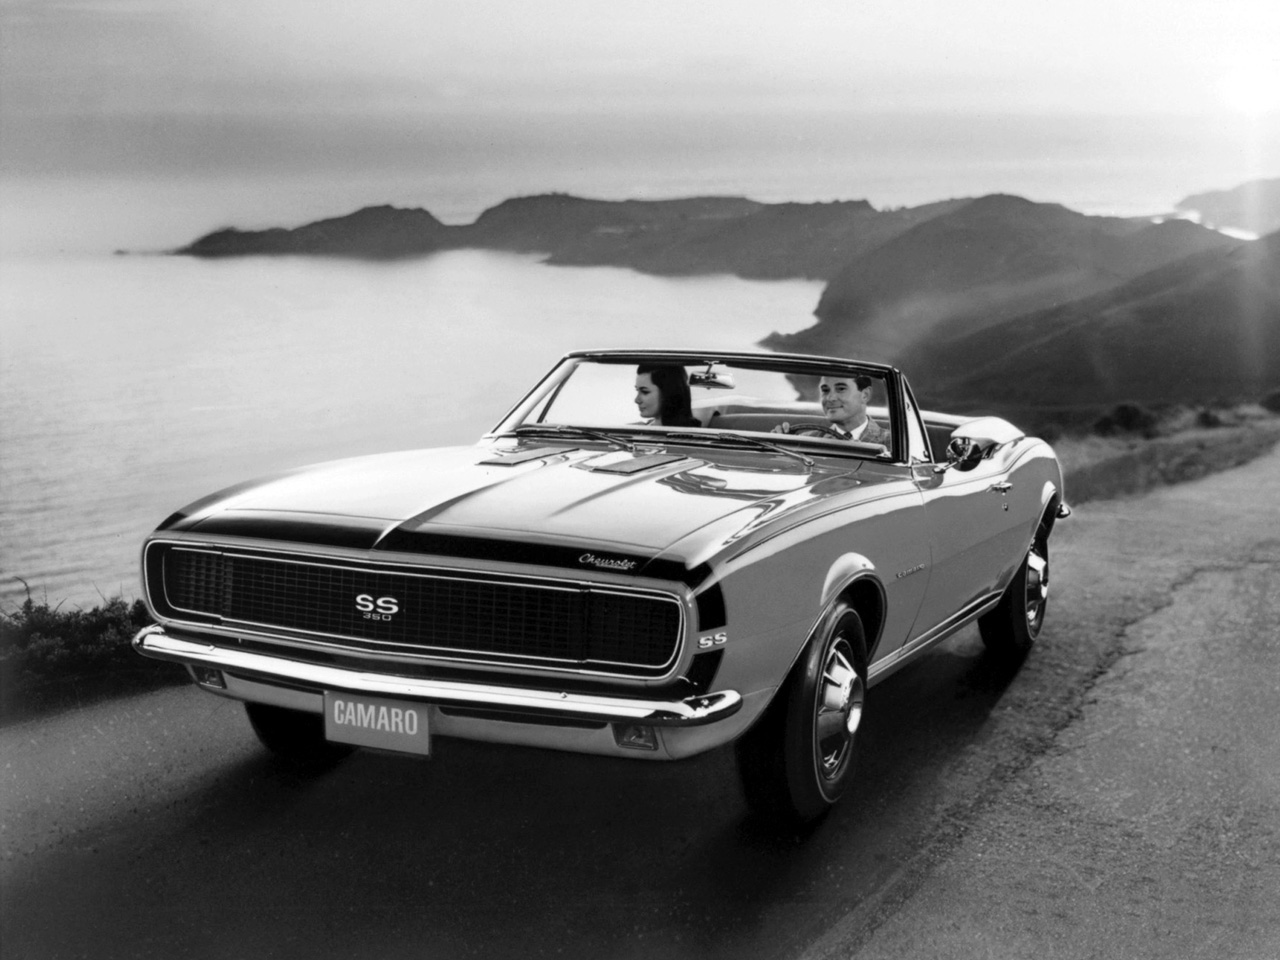 Wallpapers Chevrolet Camaro SS 350 Convertible 1967 Wallpapers 1280x960